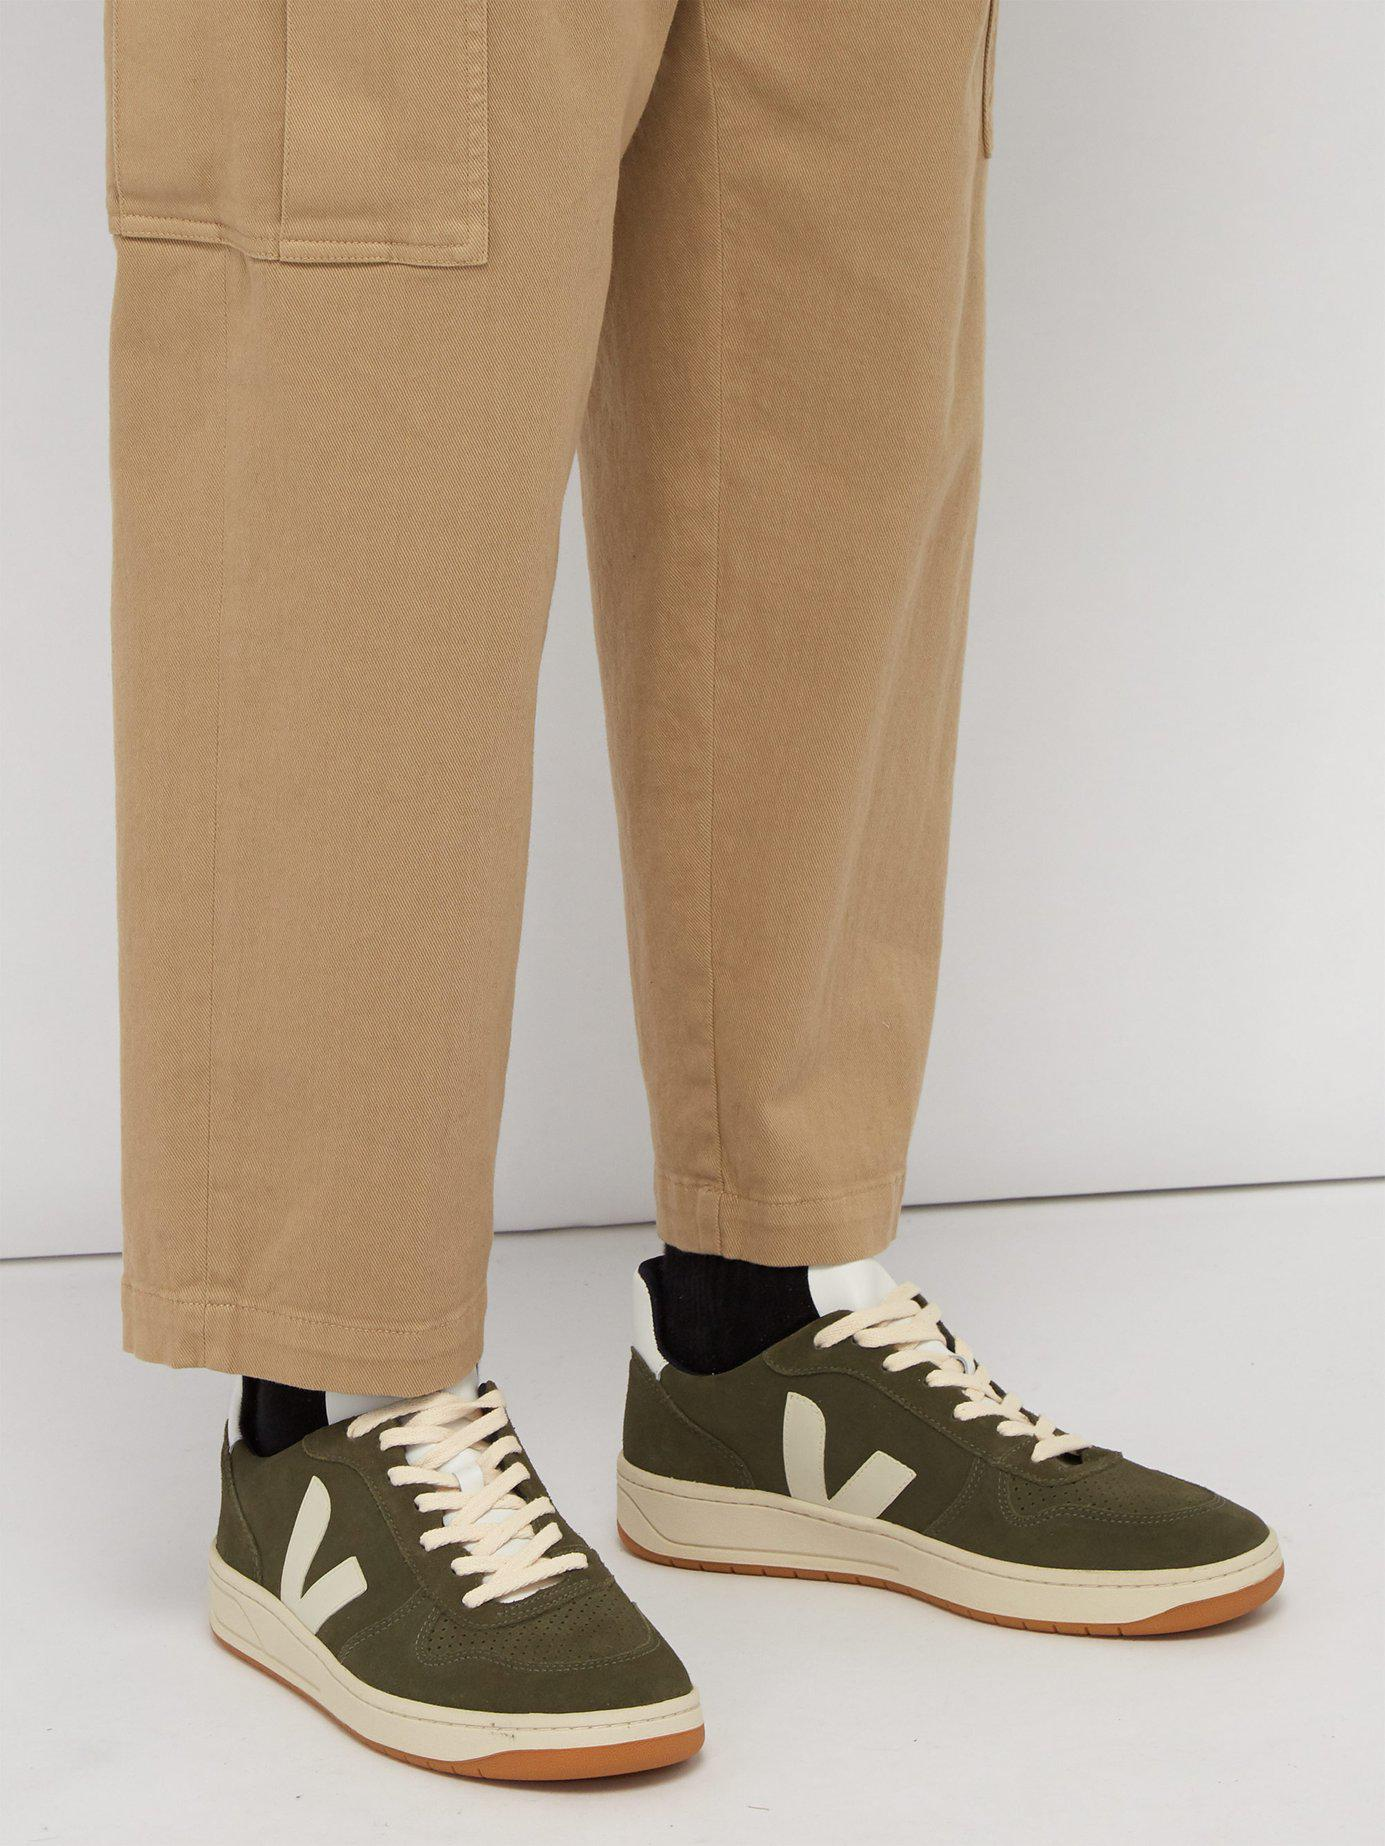 8c4c708df717b5 Veja - Green V 10 Low Top Suede Trainers for Men - Lyst. View fullscreen